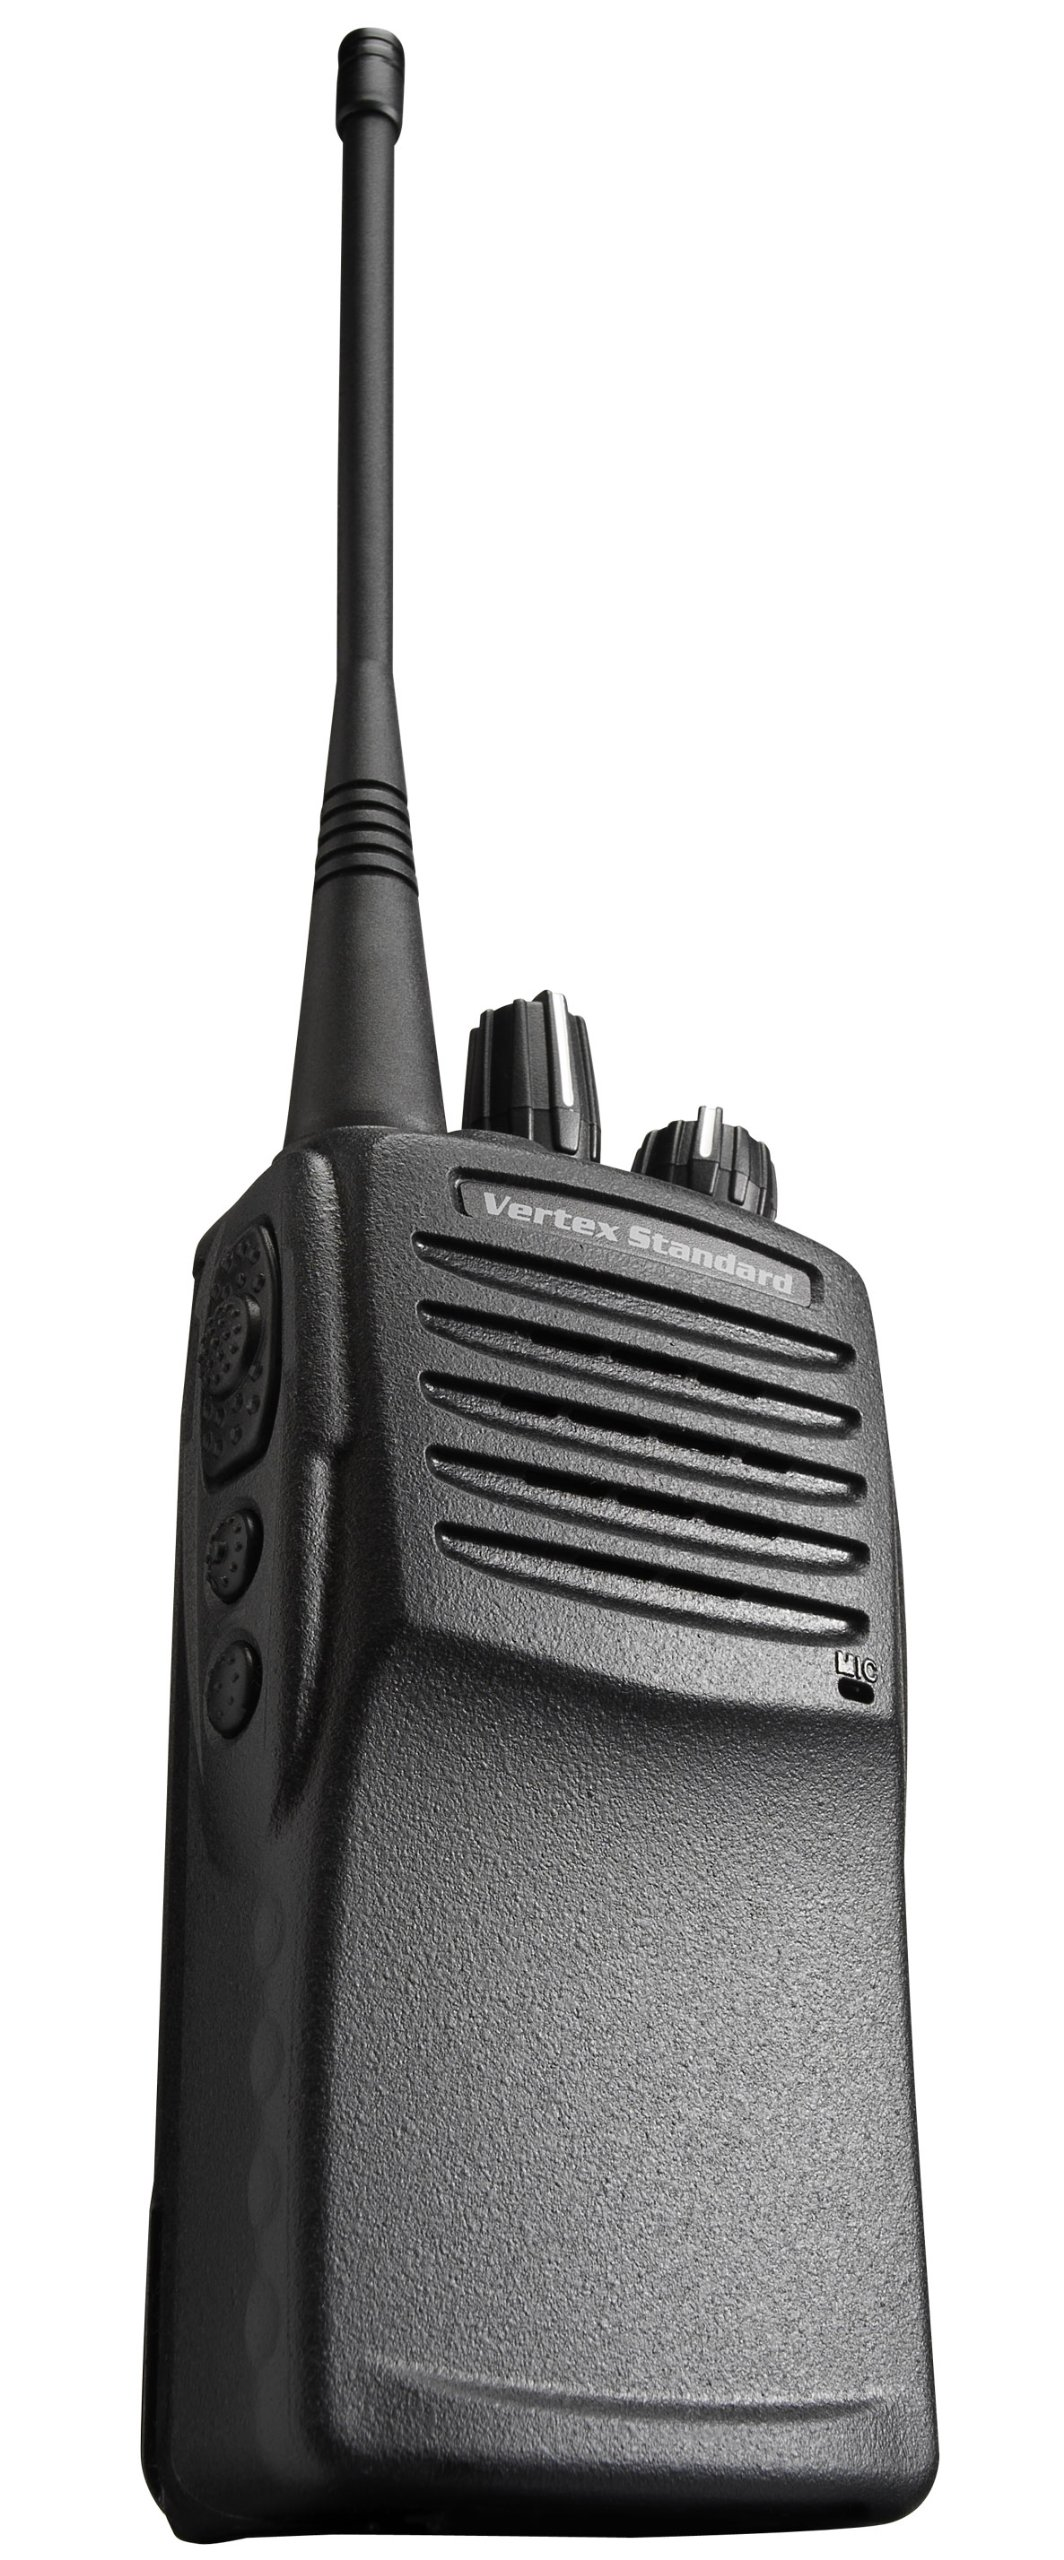 Vertex VX451-D0UN Business/Industrial Trunking Portable VHF Universal Radio Package (Black) by Vertex Standard